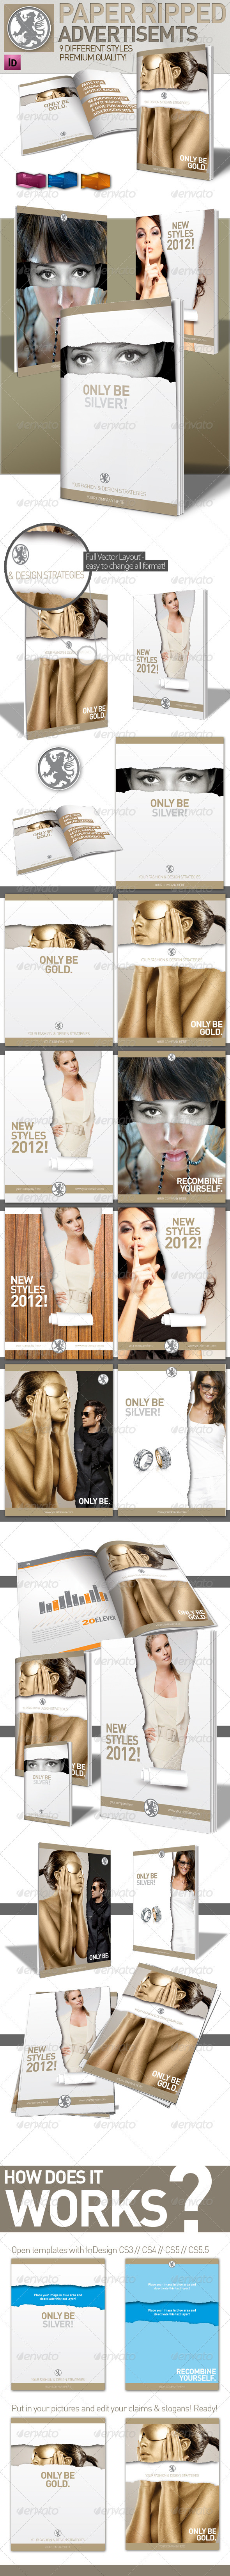 GraphicRiver InDesign Magazine Paper Ripped Ad 9 Variations 1186386